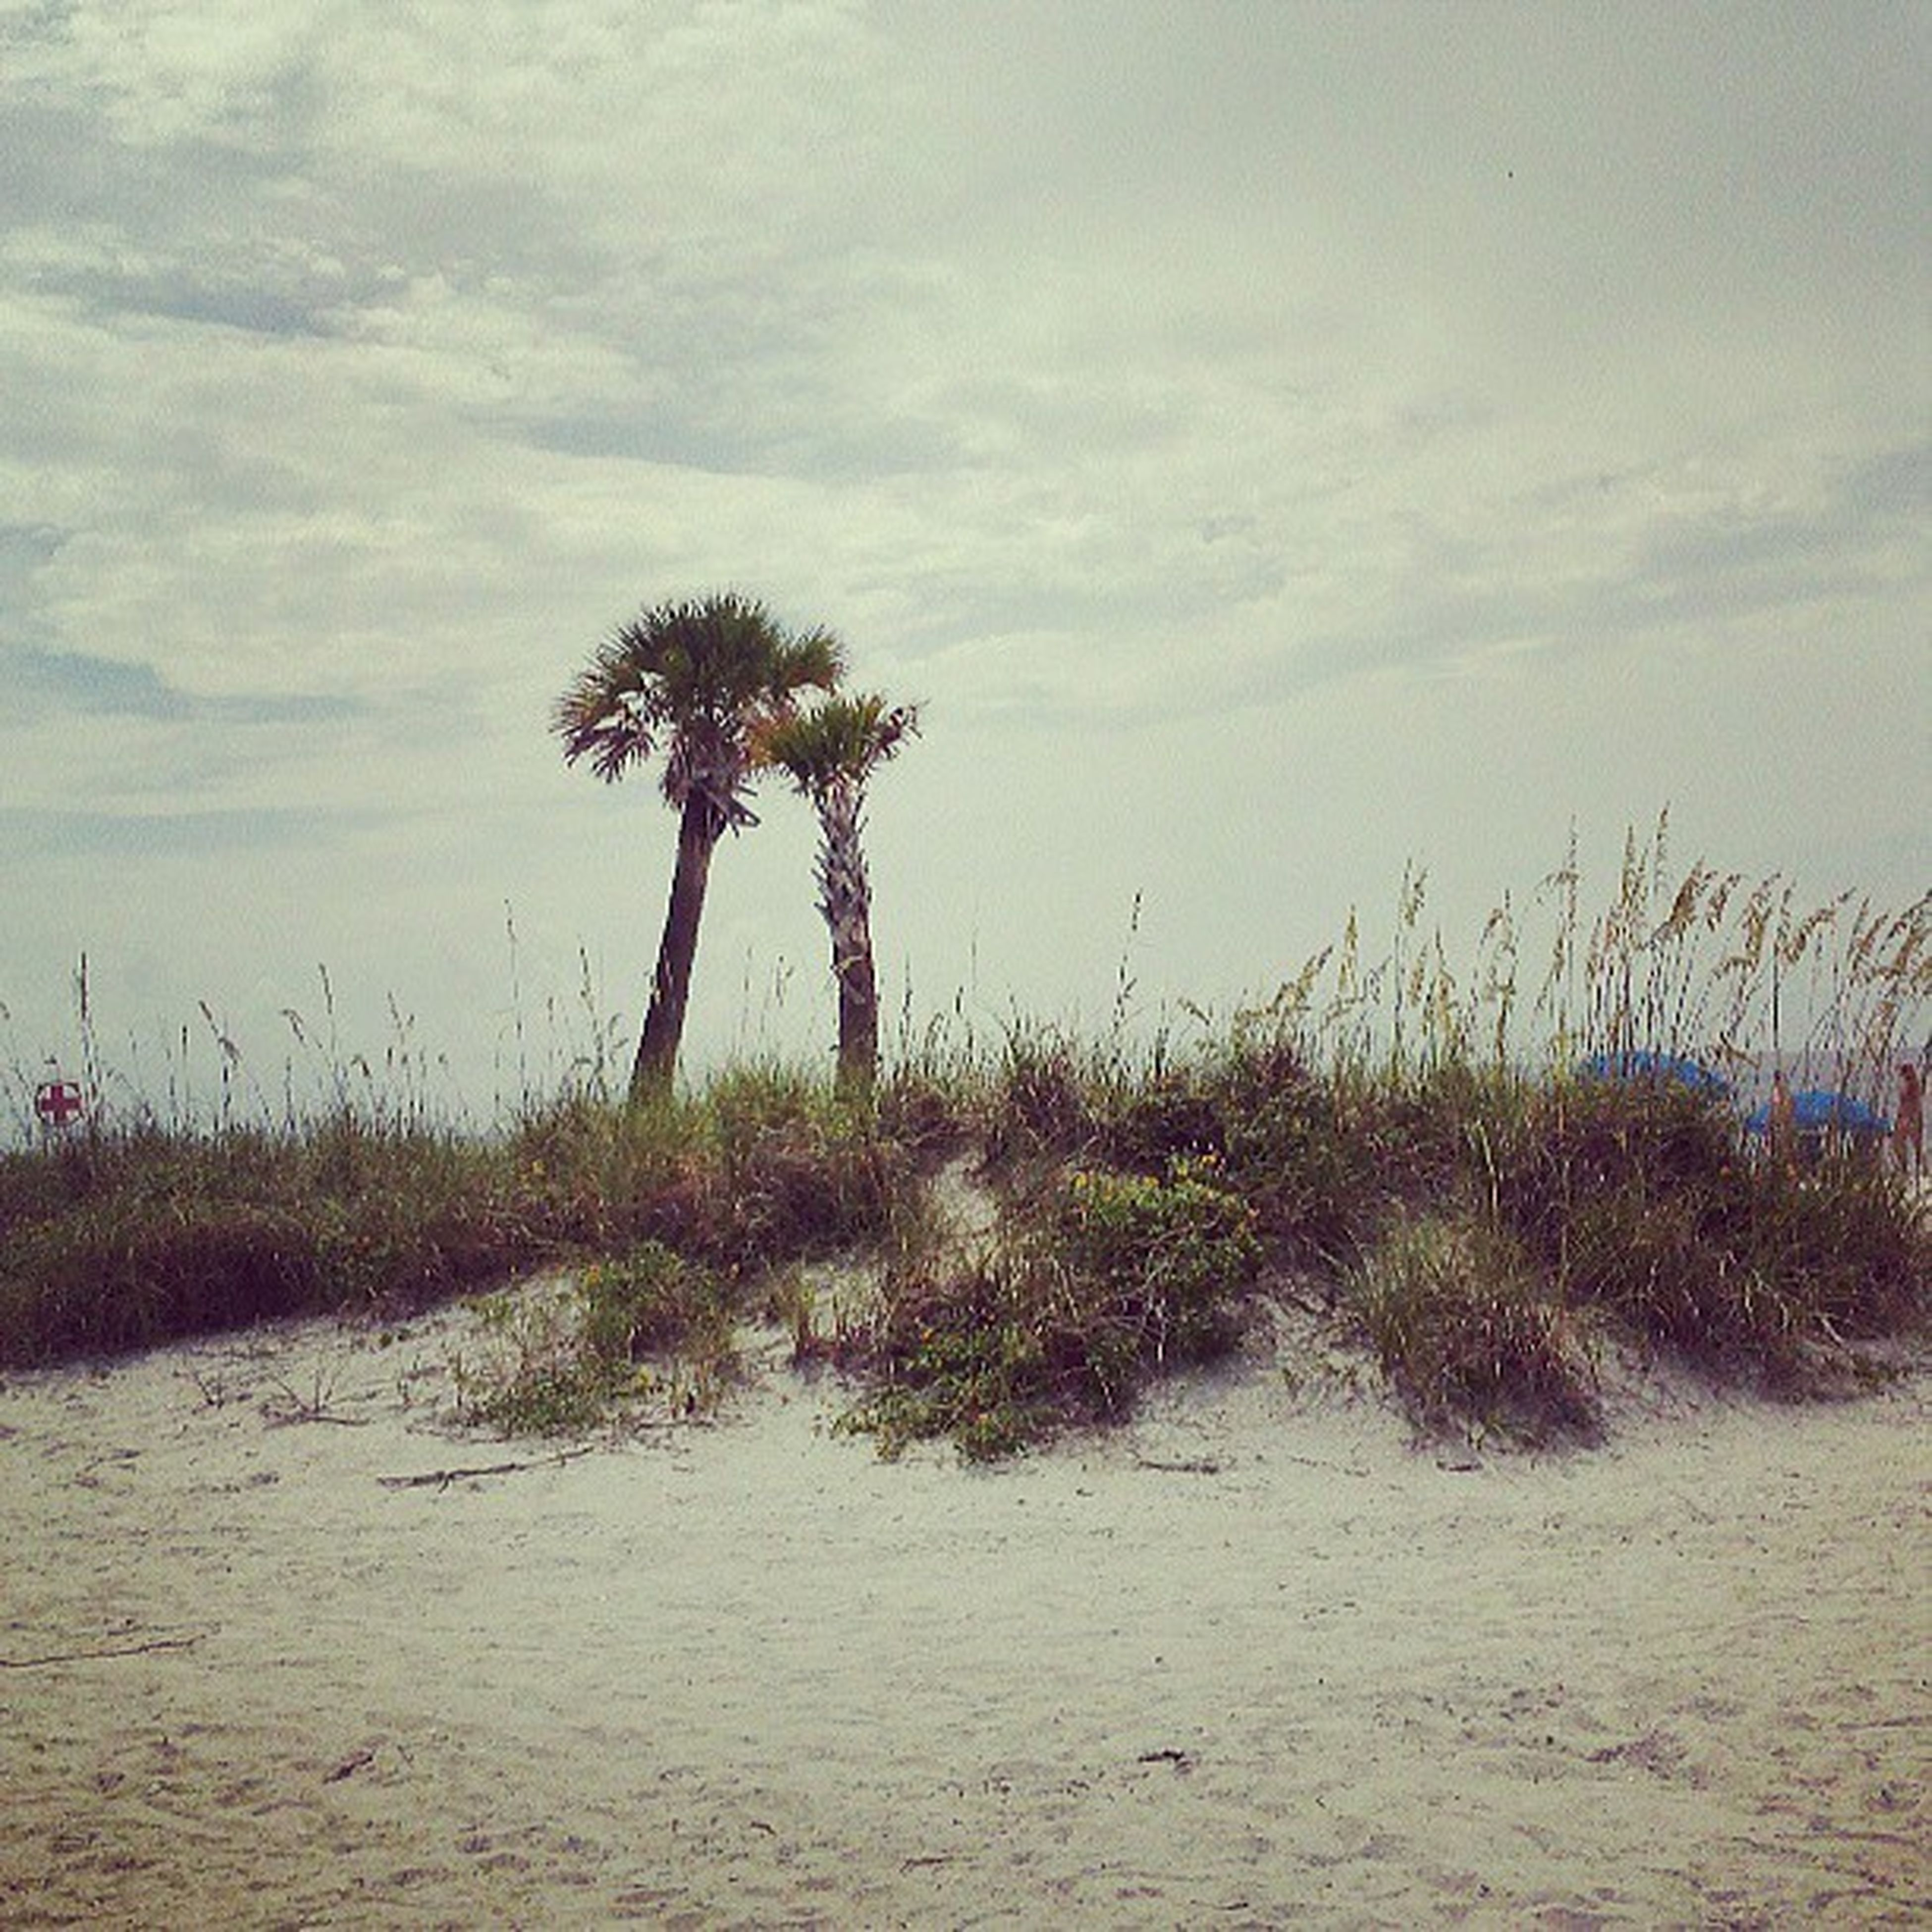 palm tree, tranquility, sky, tranquil scene, tree, growth, nature, beauty in nature, scenics, cloud - sky, landscape, water, grass, cloud, plant, beach, field, day, no people, outdoors